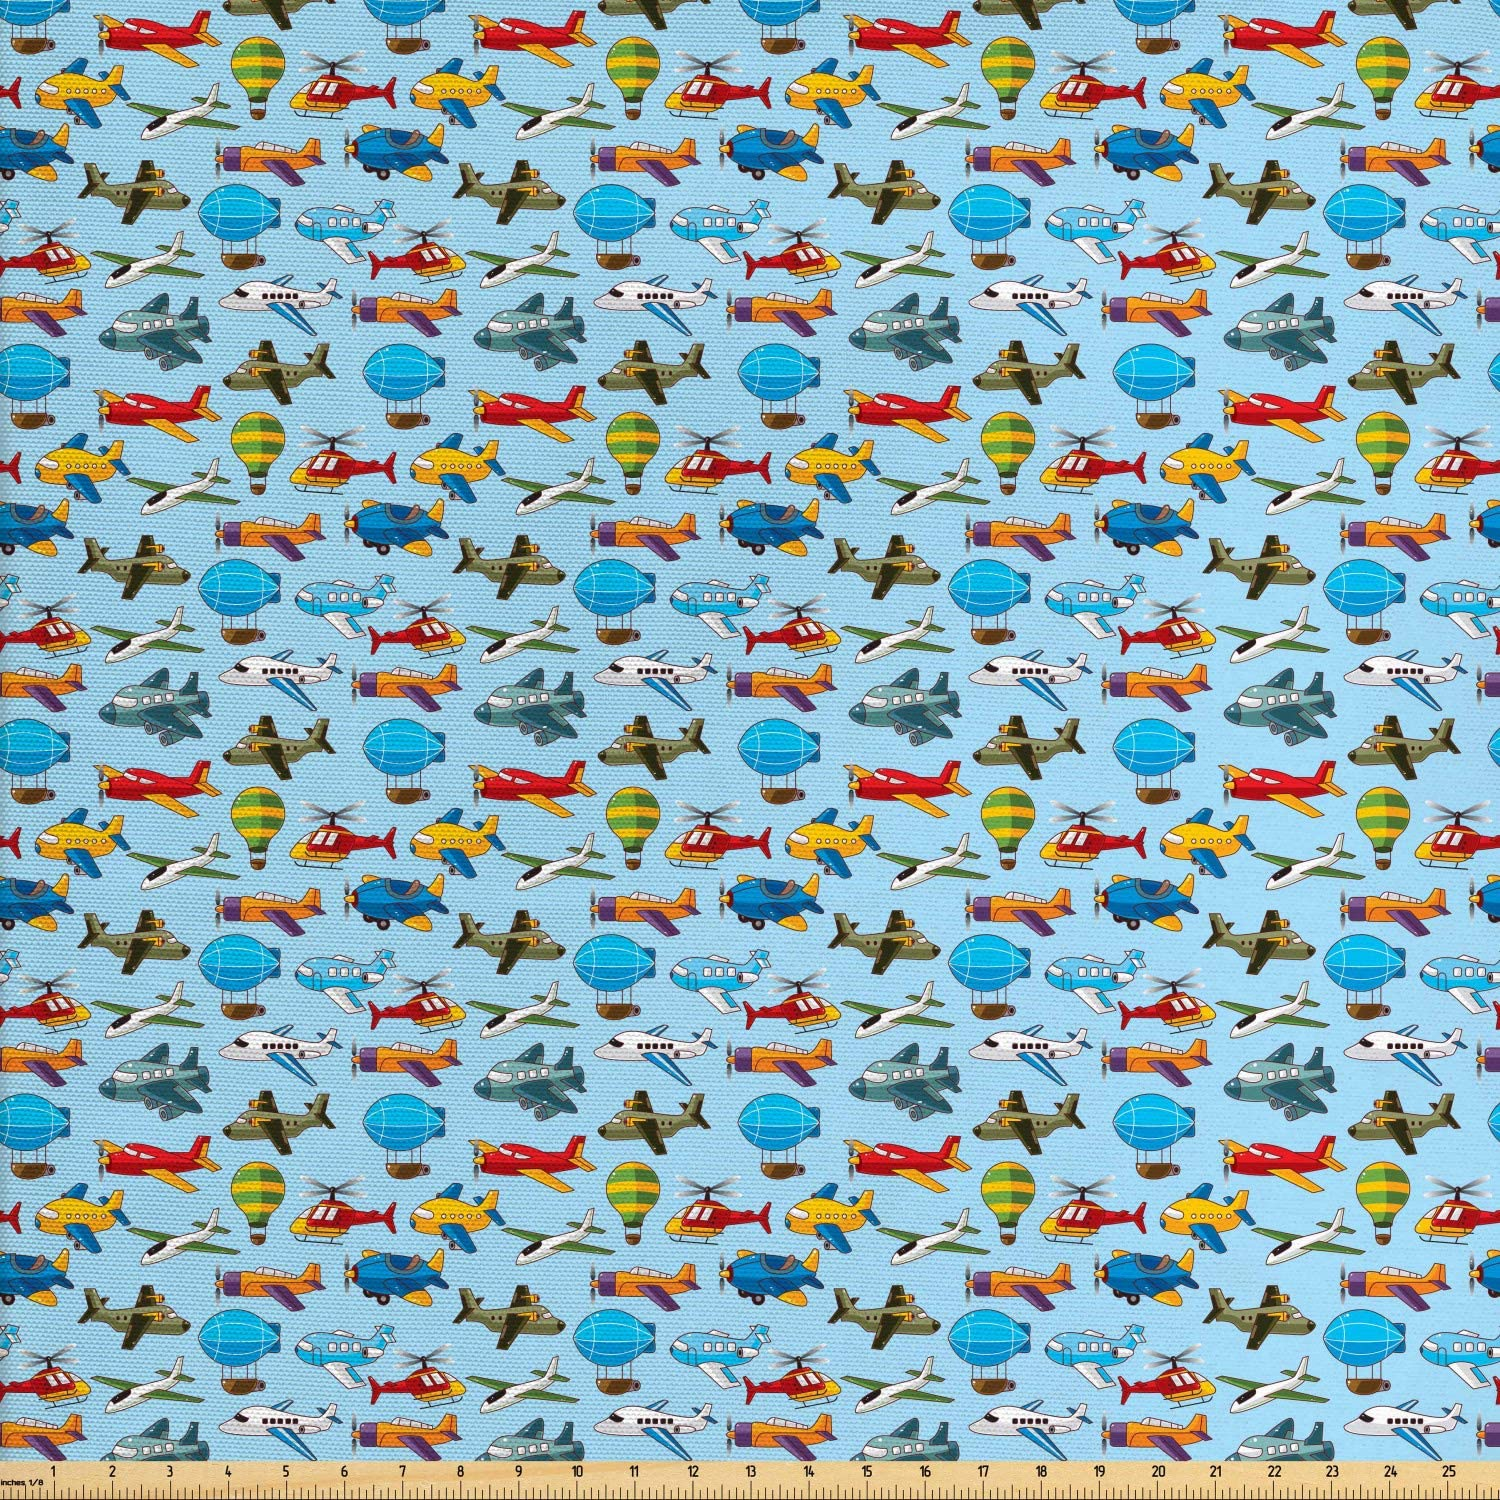 Lunarable Plane Fabric by The Yard, Airplane Helicopter Zeppelin Air Balloon and Toy Flights Nursery Themed Pattern, Decorative Fabric for Upholstery and Home Accents, 3 Yards, Red Blue